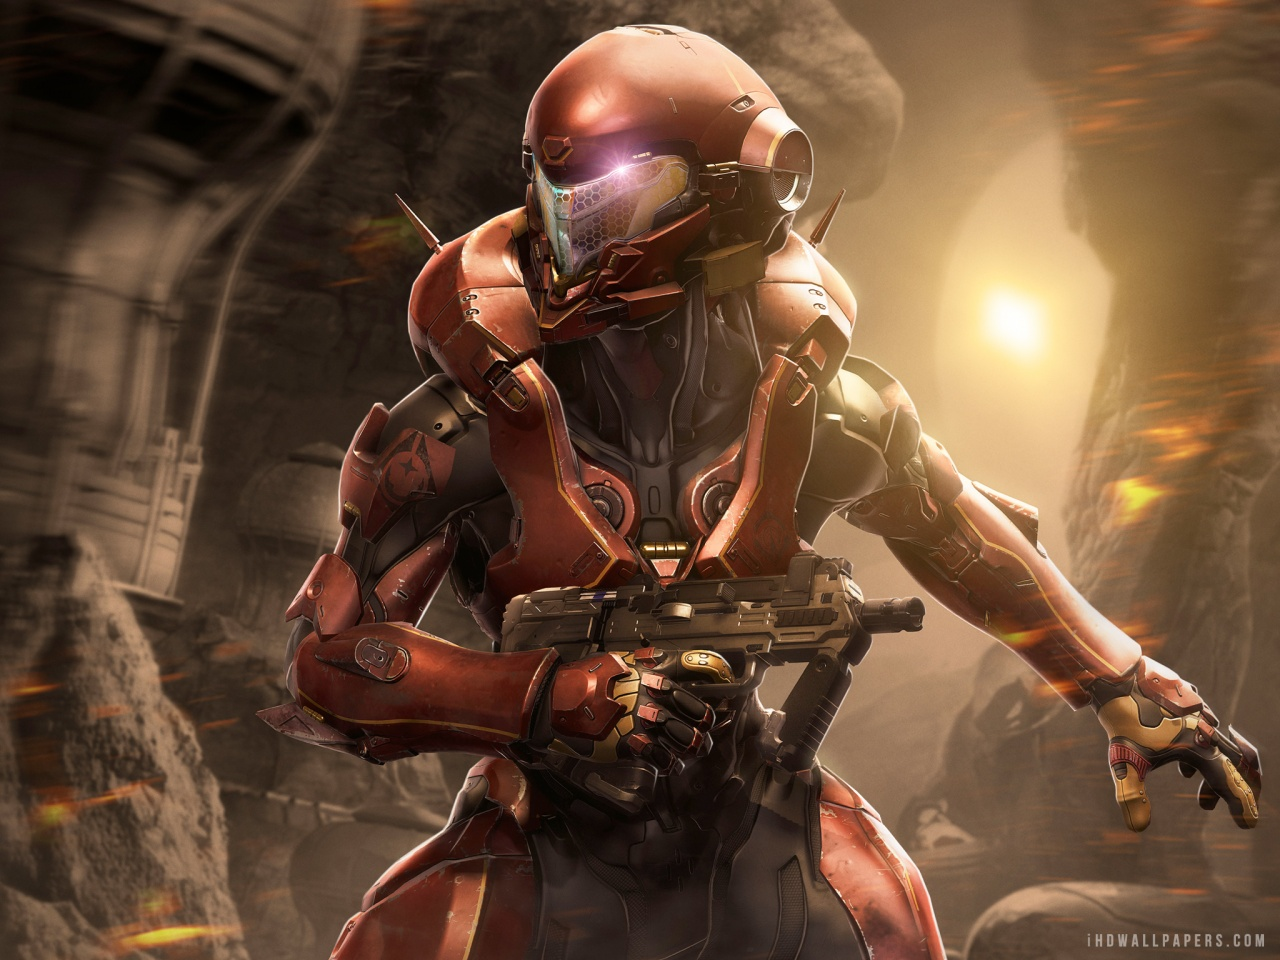 Halo 5 Guardians Olympia Vale HD Wallpaper   iHD Wallpapers 1280x960